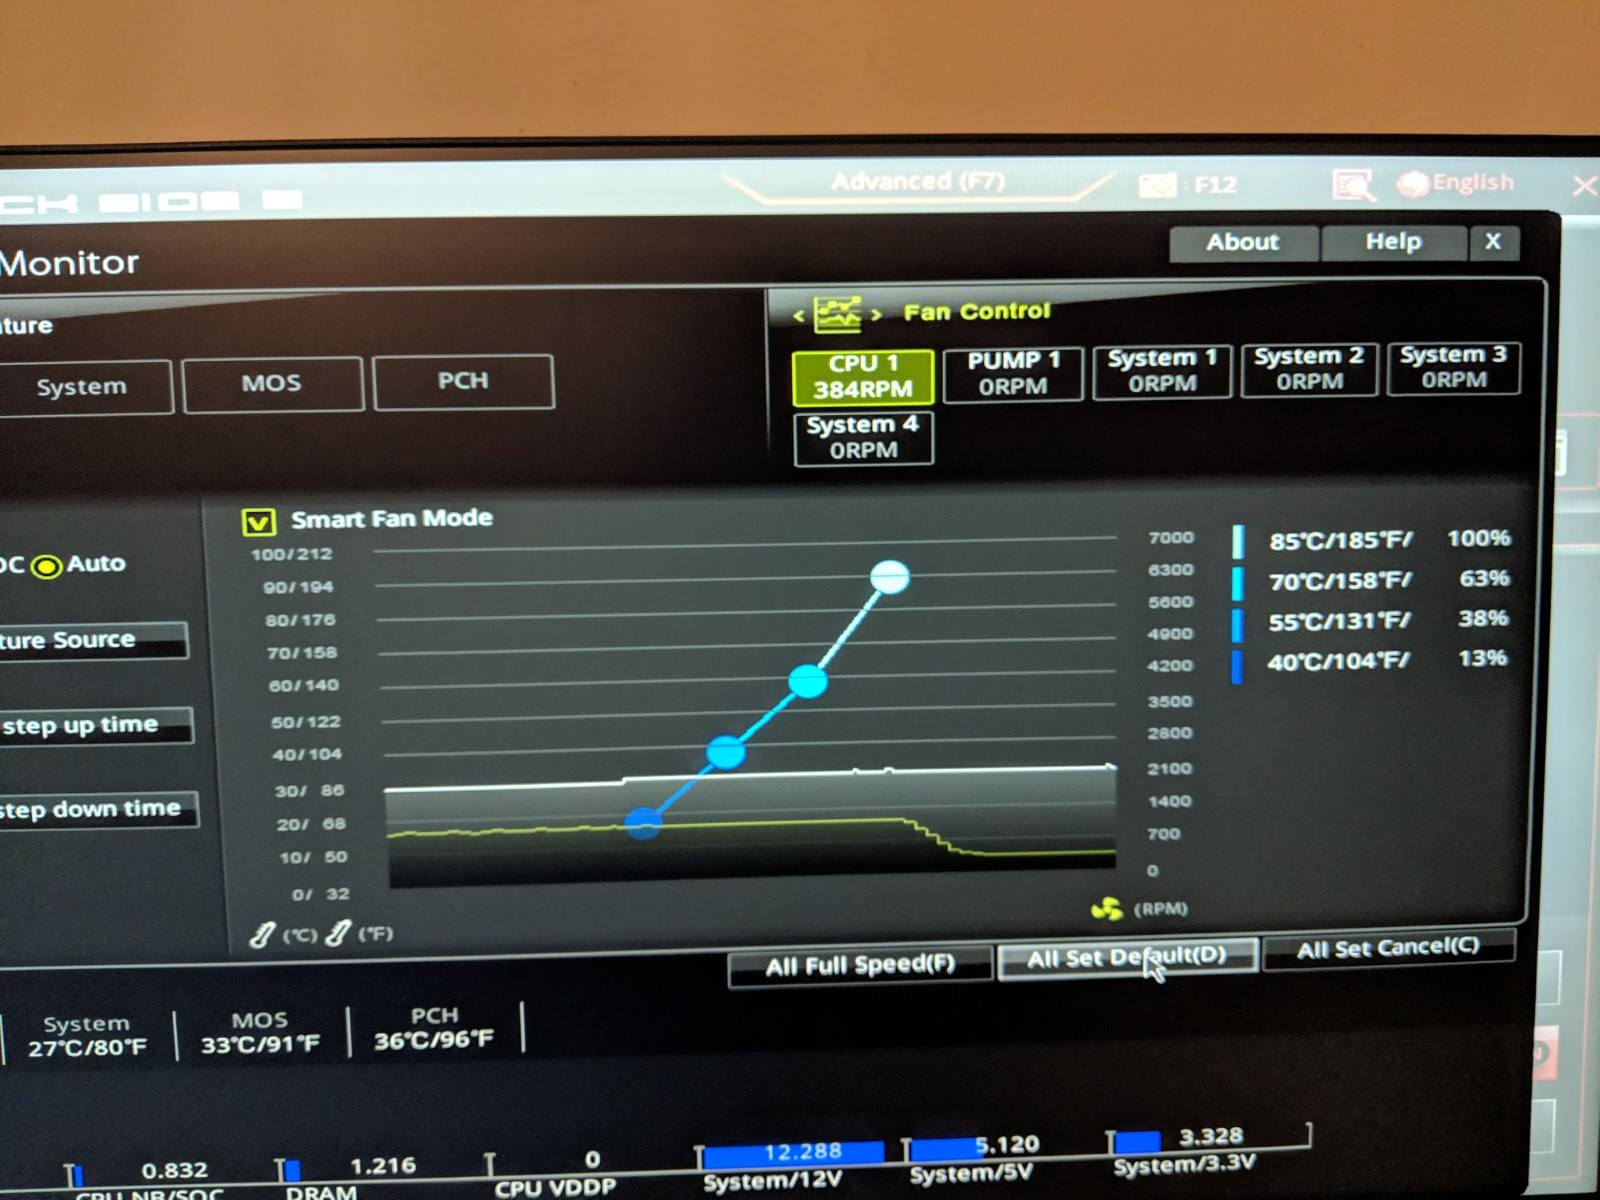 MSI Tomahawk: CPU fan curve not working - CPUs, Motherboards